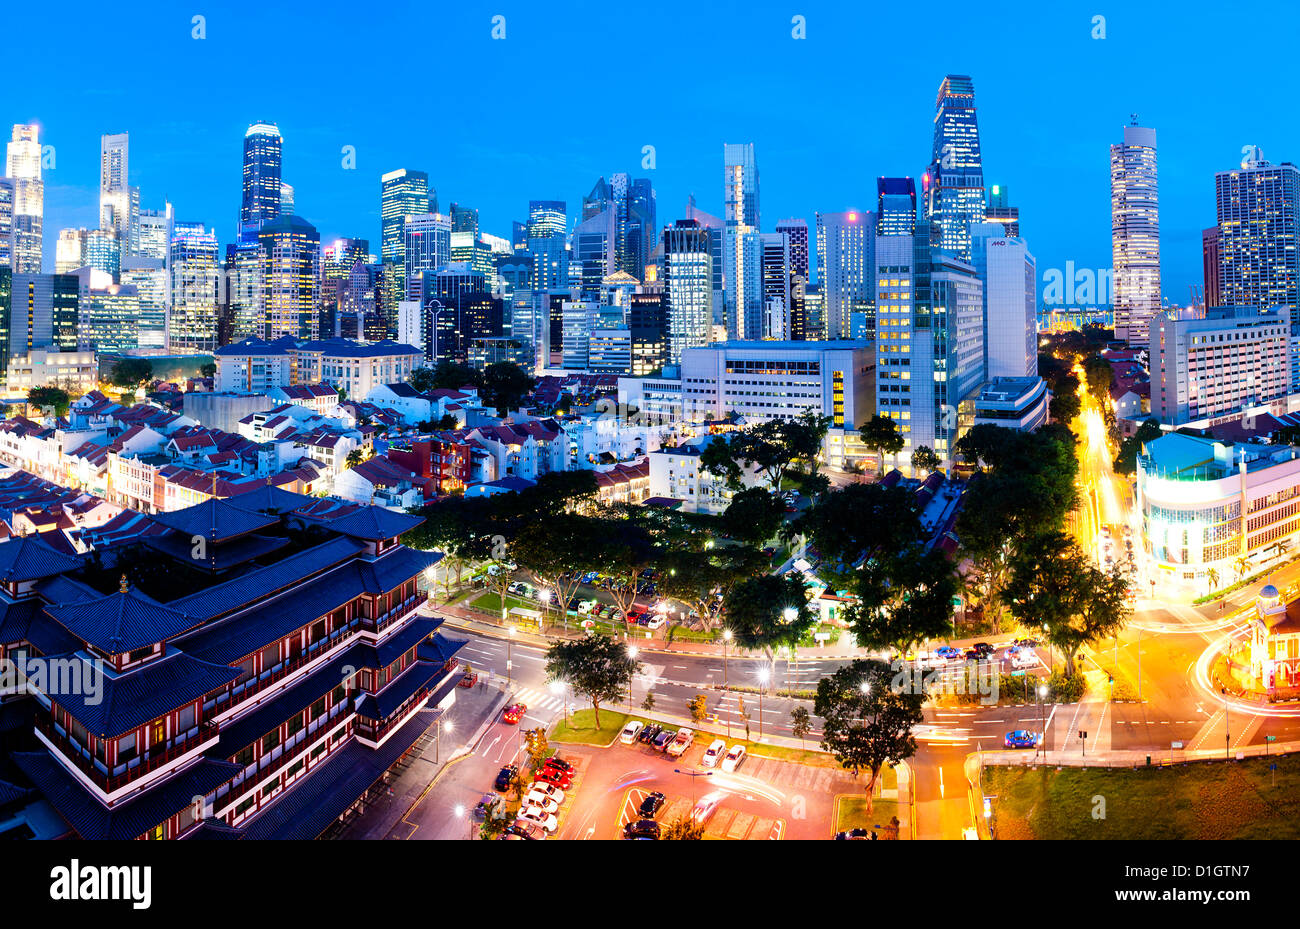 The Buddha Tooth Relic Temple and Central Business District (CBD), Chinatown, Singapore, Southeast Asia, Asia - Stock Image